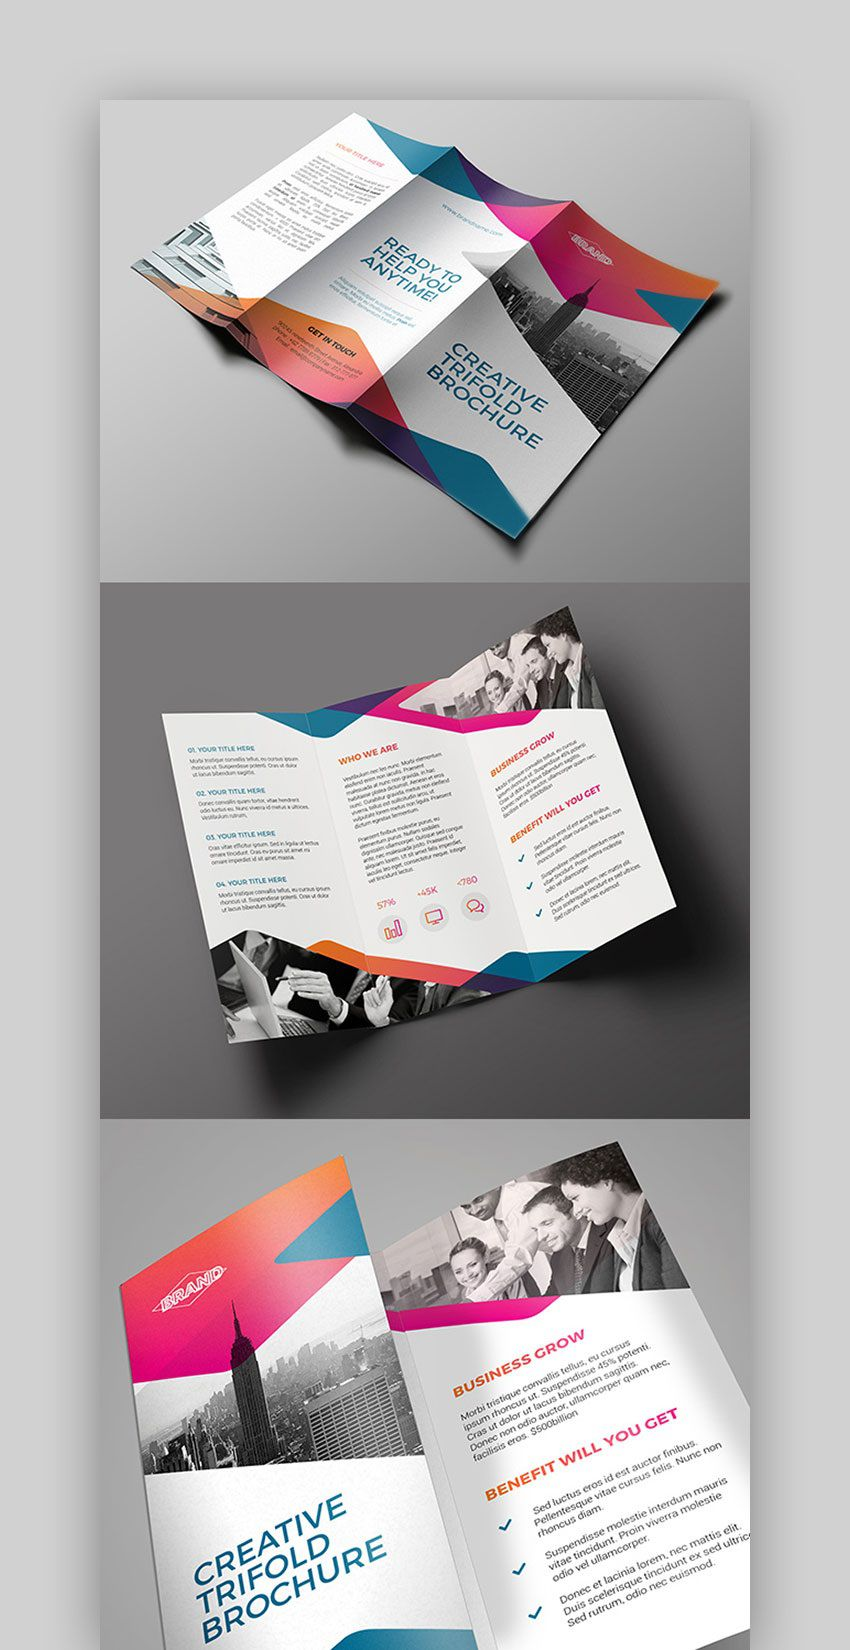 008 Amazing Indesign Trifold Brochure Template Picture  Templates Adobe Tri Fold Bi Free DownloadFull